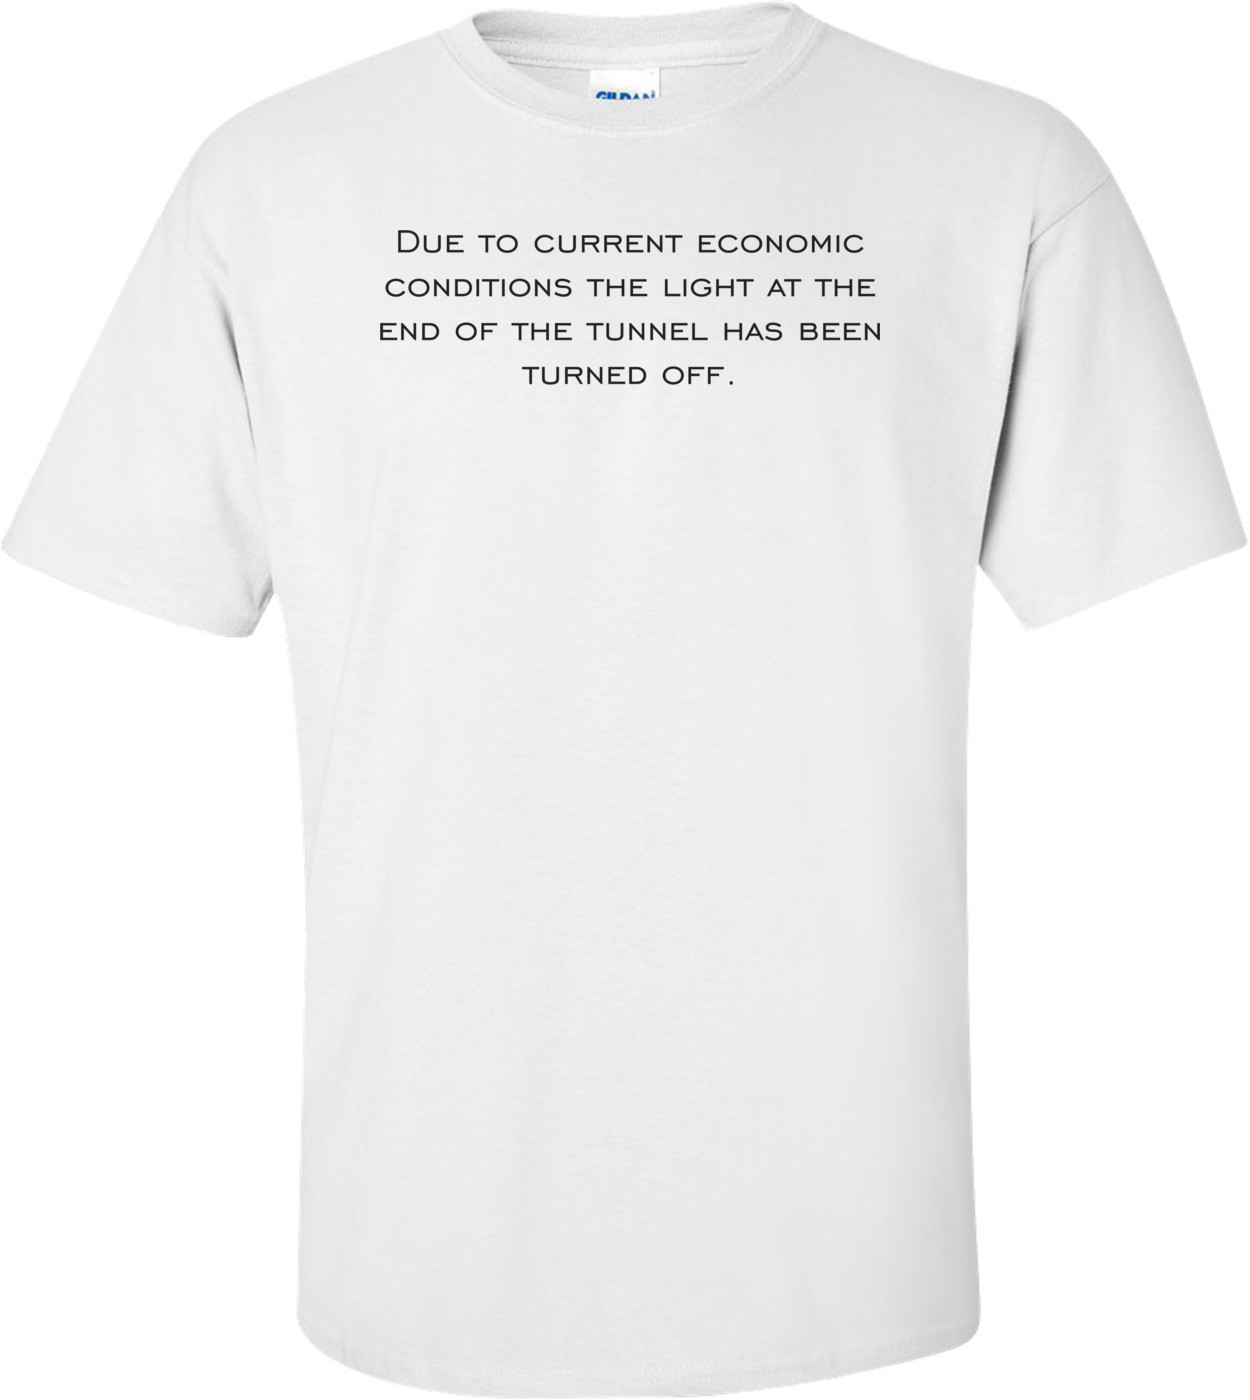 Due to current economic conditions the light at the end of the tunnel has been turned off. Shirt